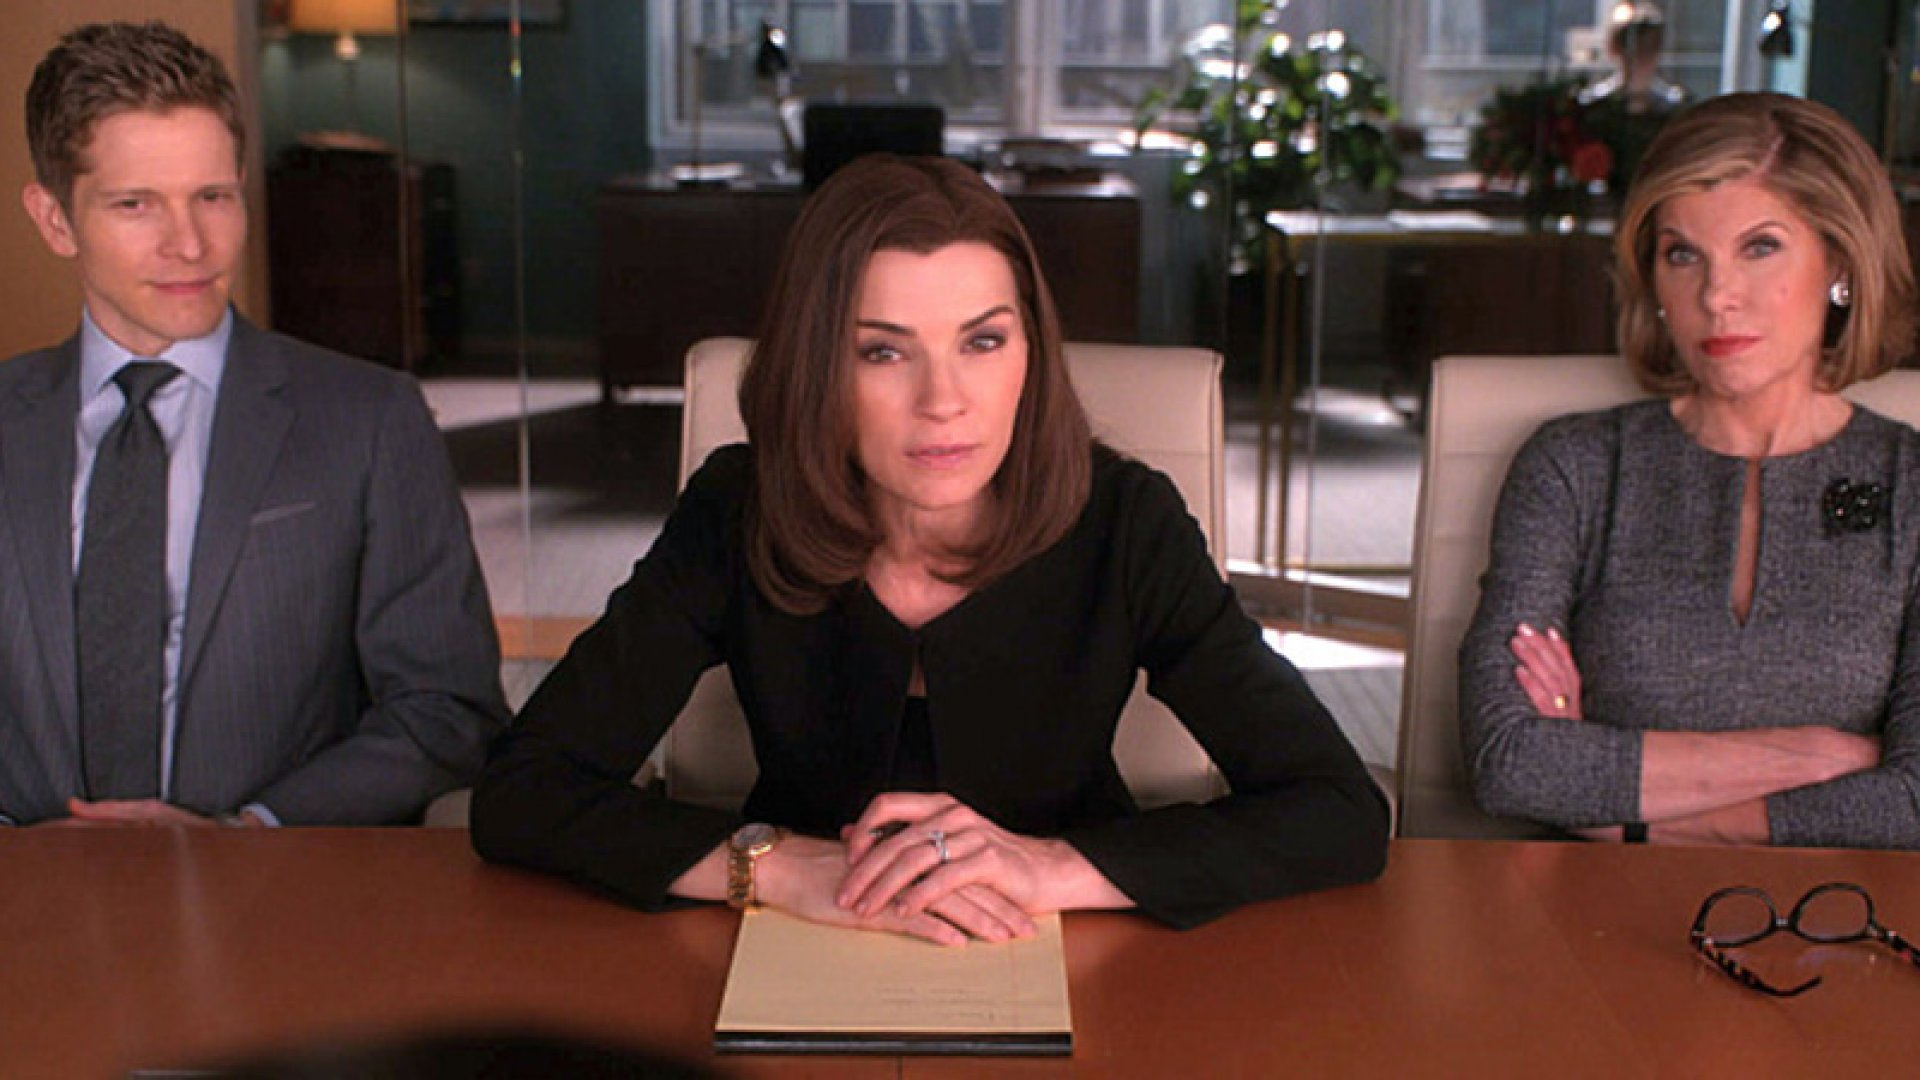 The Good Wife: How to Keep Your Focus